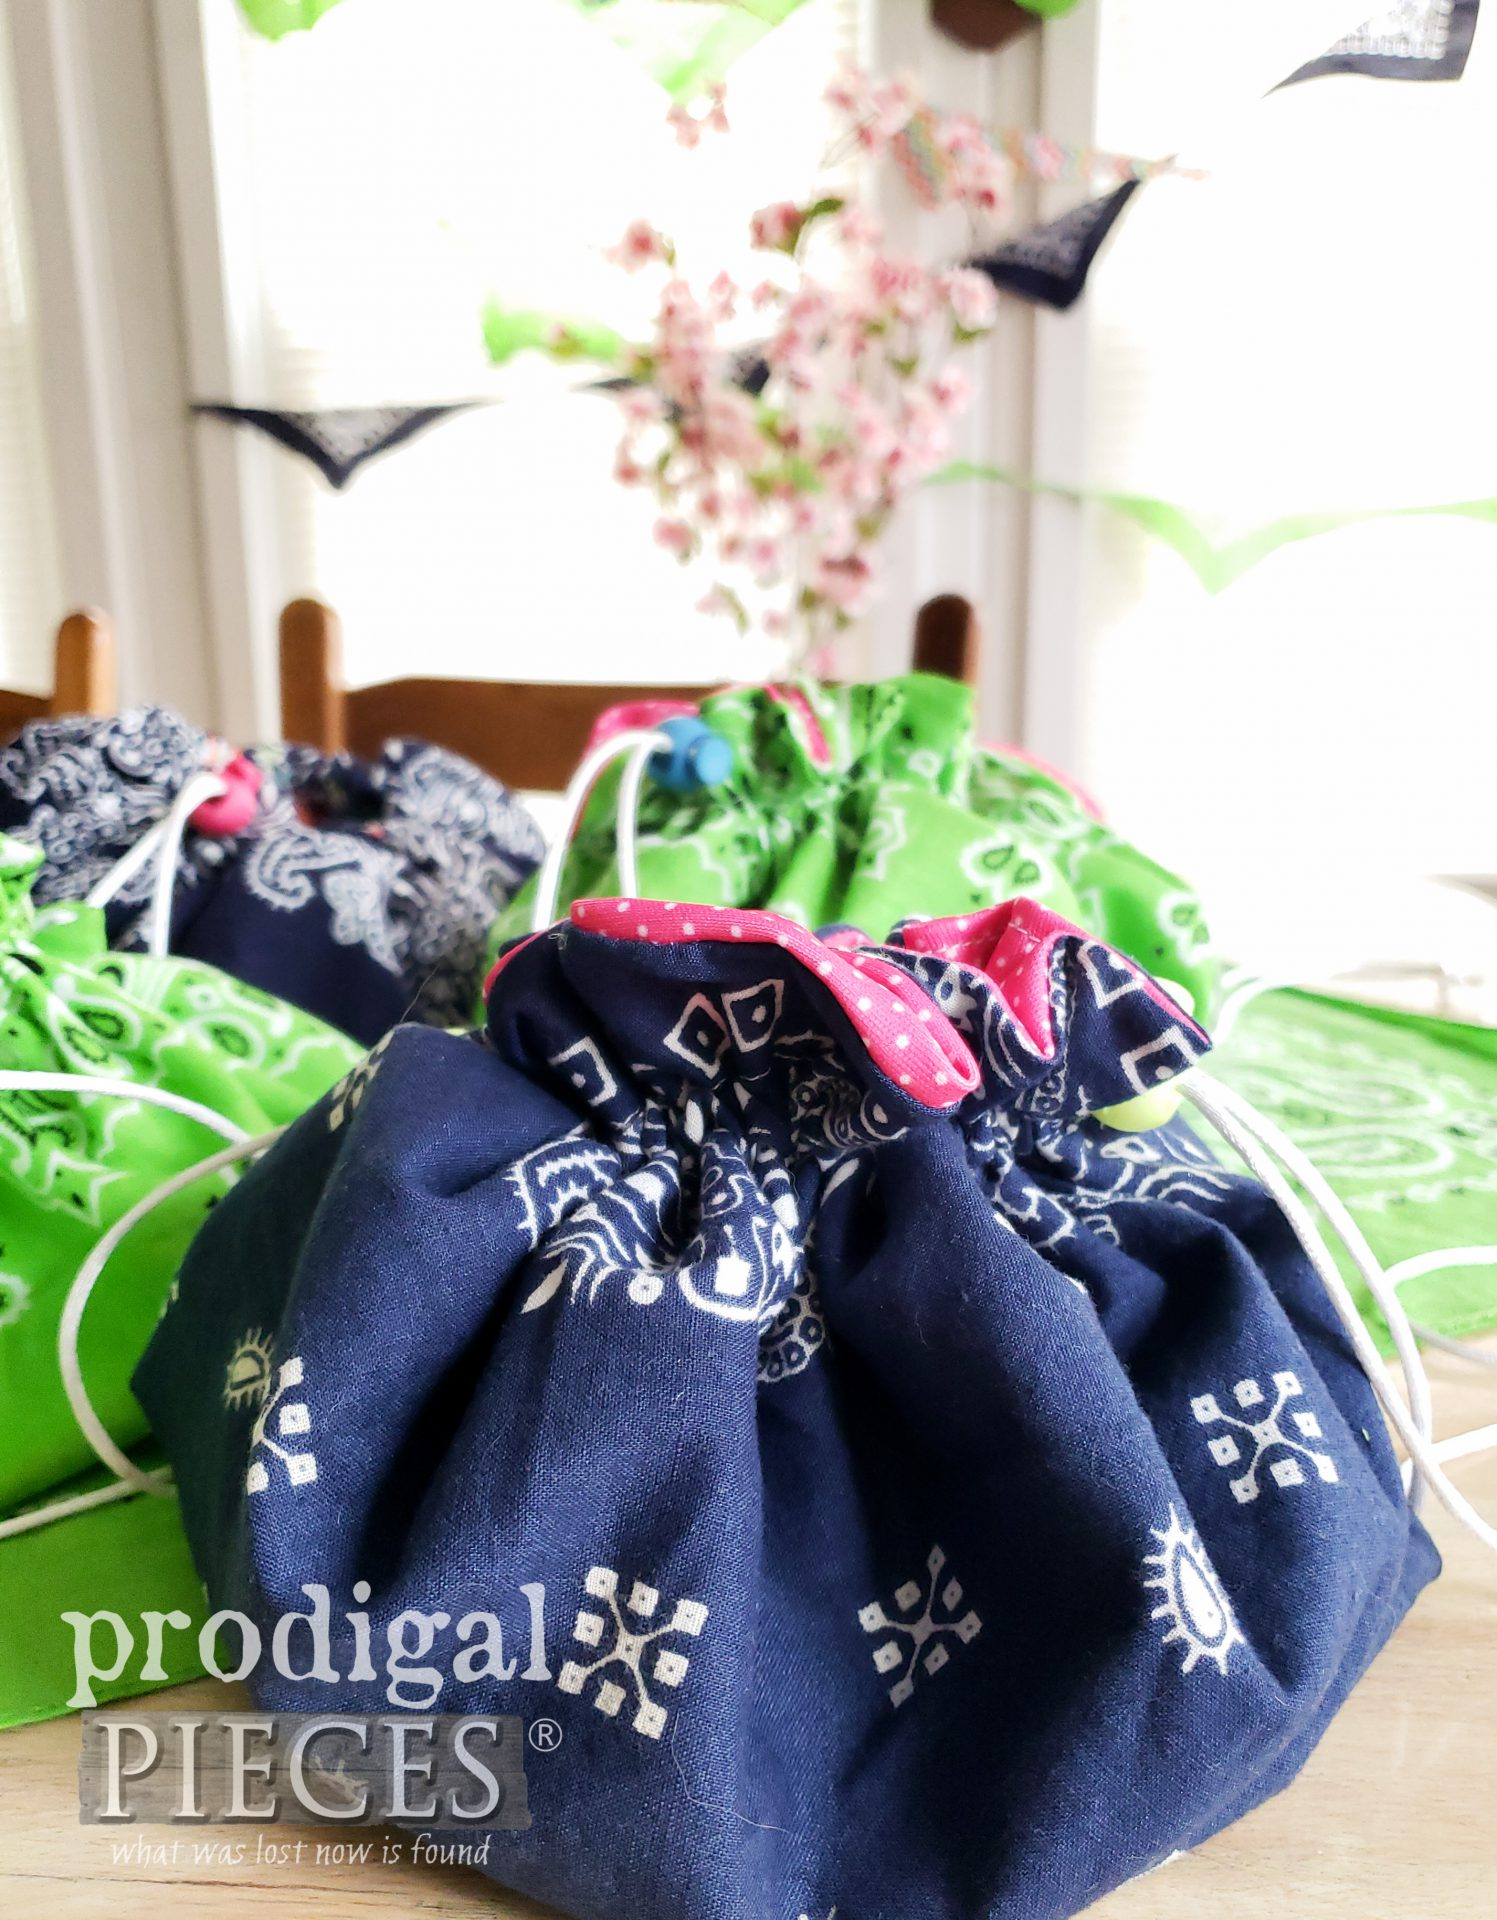 Blue Bandana Drawstring Bag by Larissa of Prodigal Pieces | prodigalpieces.com #prodigalpieces #handmade #sewing #fashion #bag